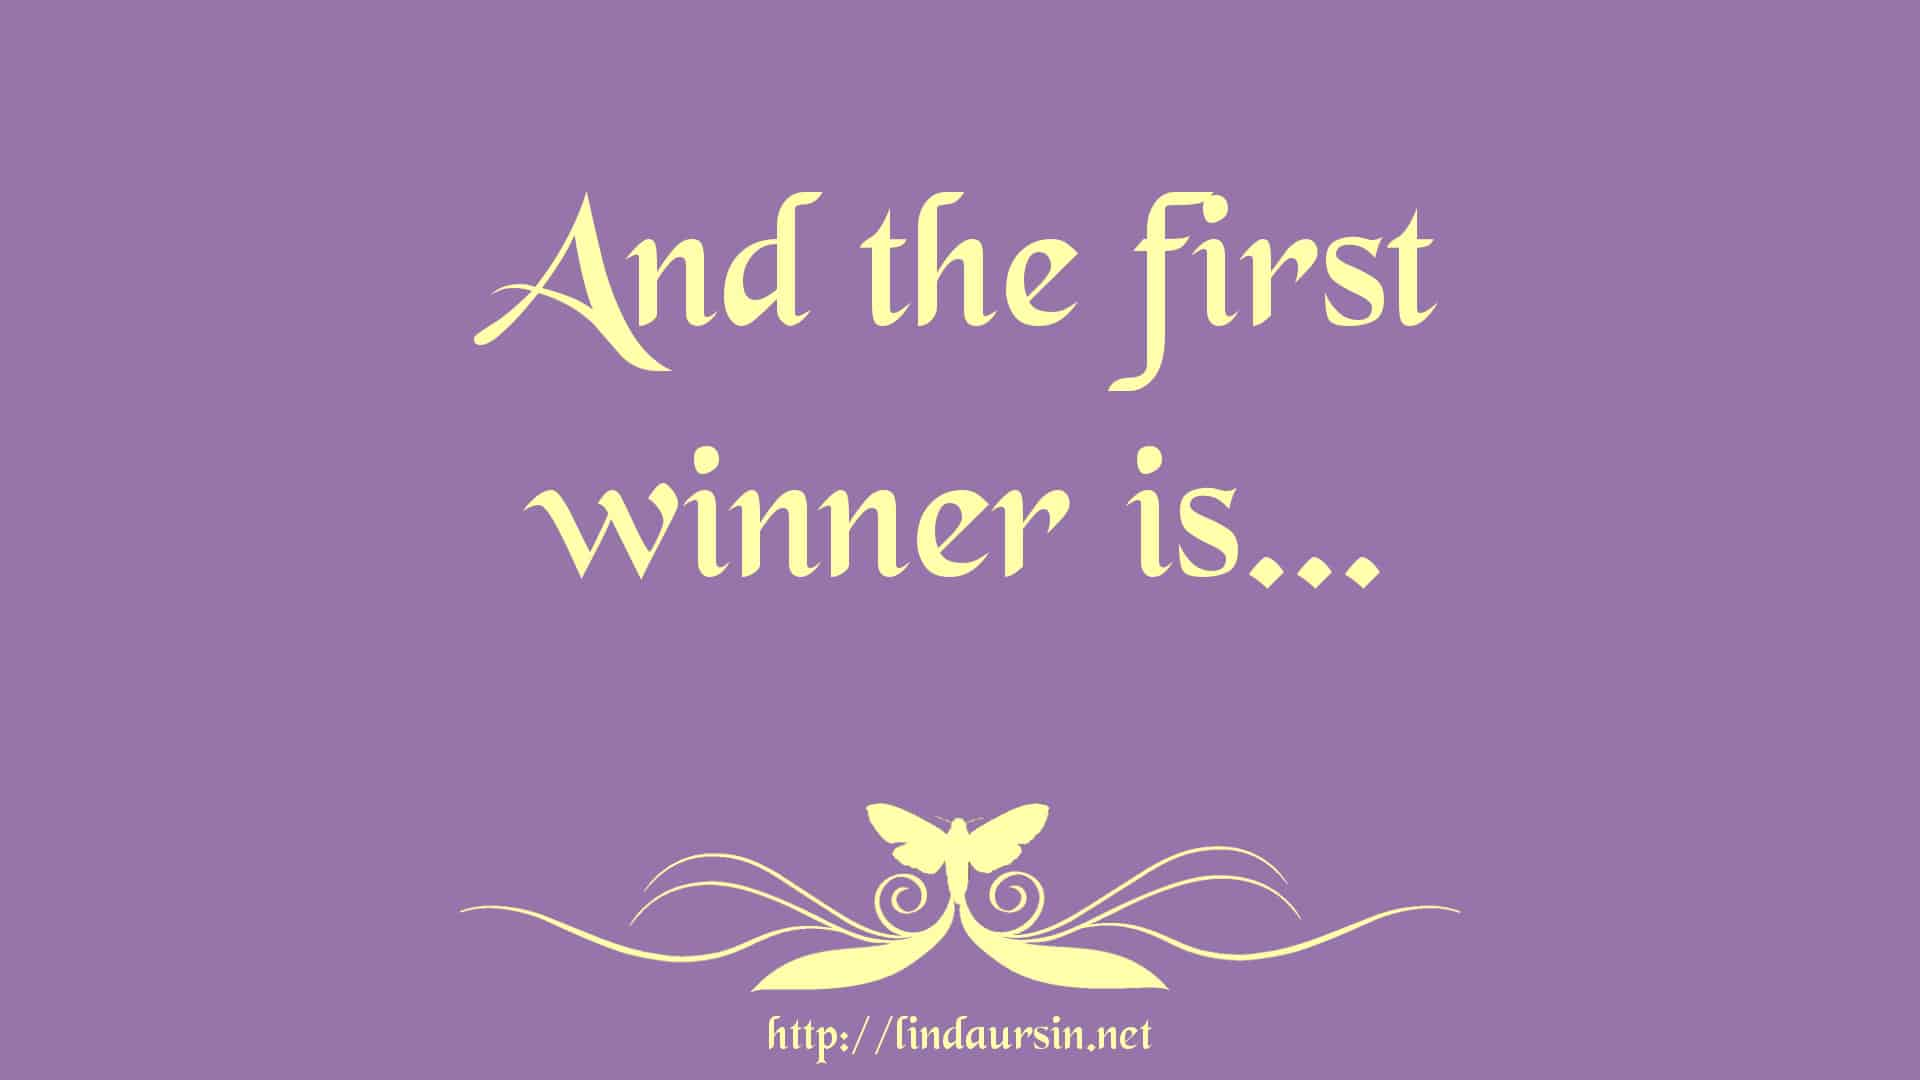 And the first winner is…